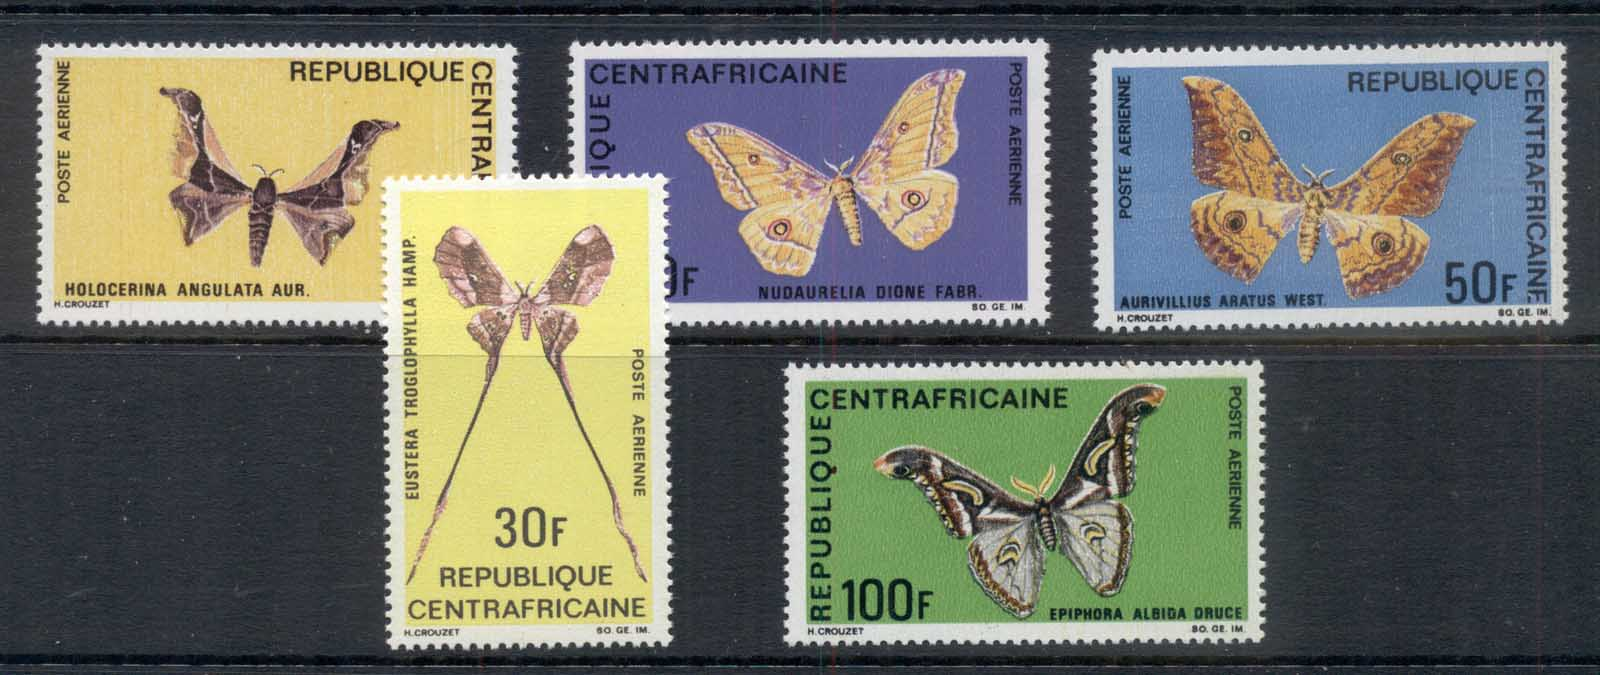 Central African Republic 1969 Insects Butterflies & Moths MUH